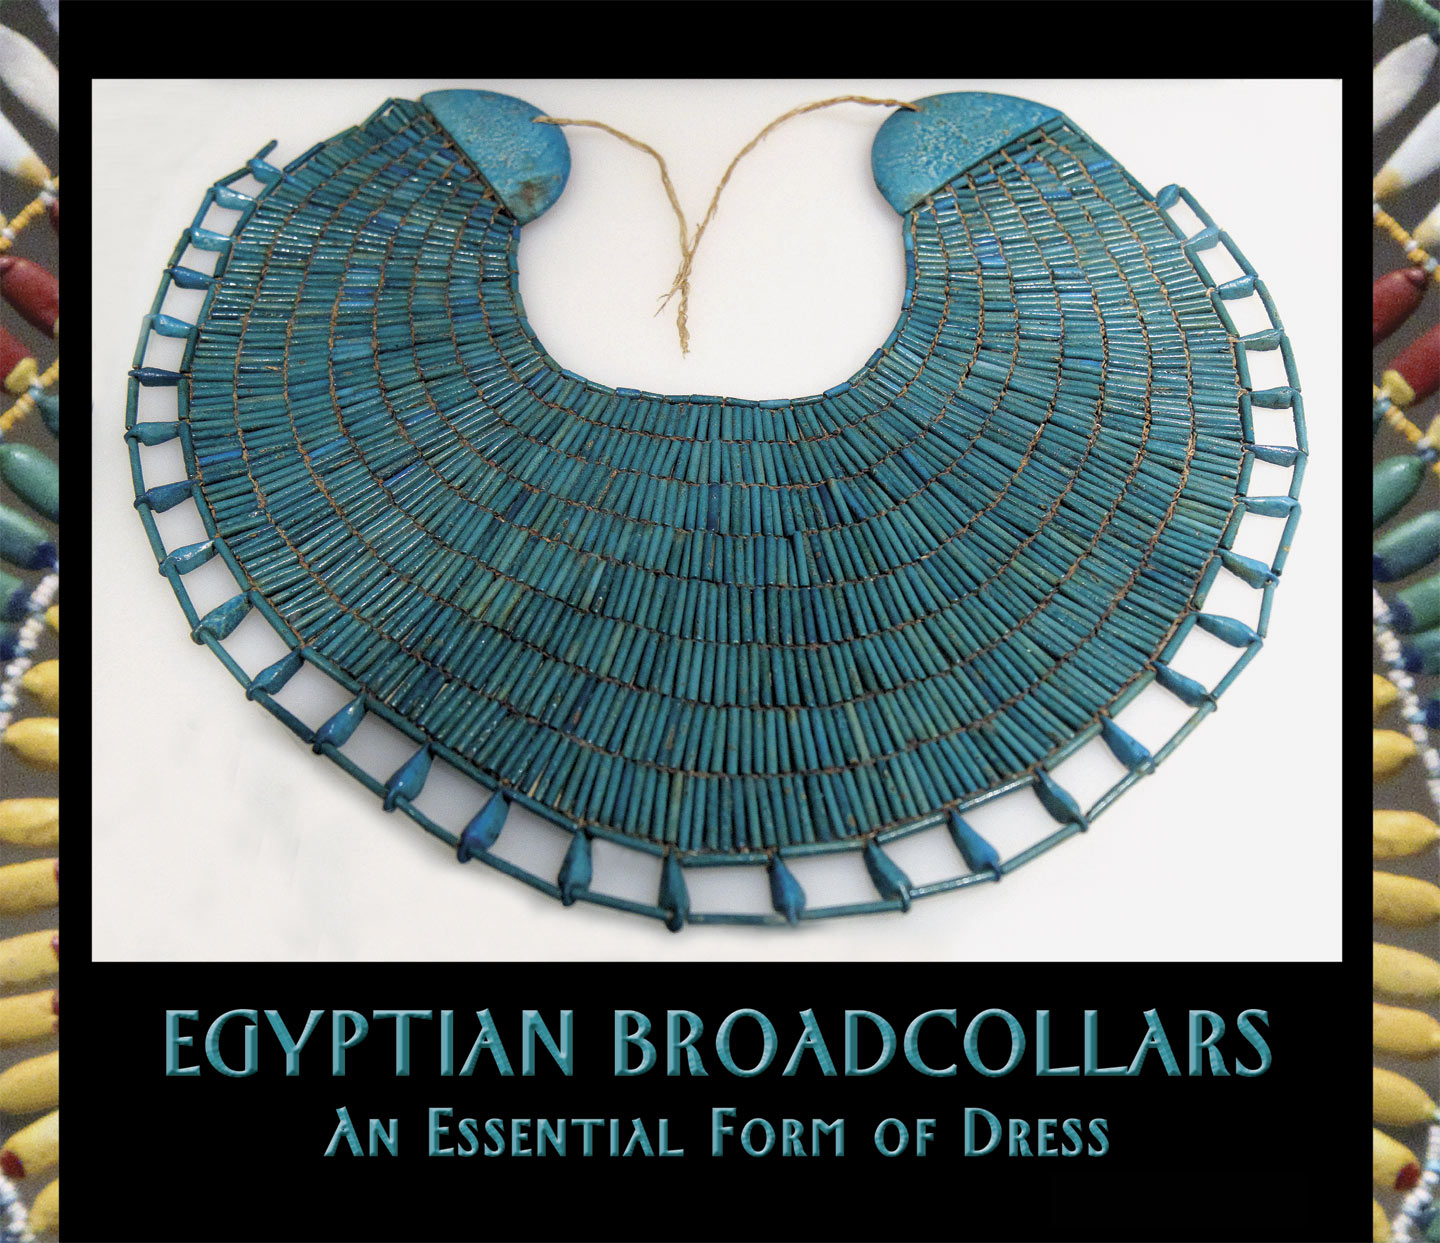 VIRTUALLY INTACT FAIENCE BROADCOLLAR OF WAH, an estate manager, XIth Dynasty, circa 2020 B.C., 39.4 cm deep. X-ray in 1940 revealed this almost intact broadcollar within his mummy wrappings. It is the best preserved example of its type and is strung on linen threads without disk beads, with the typical fringe of drop pendants and semi-circular terminals. The first row has 83 cylindrical faience beads, the last 222 beads, increasing gradually in length from top to bottom, hinting at how many beads are required for this broadcollar. Ceramic artist Carol Strick has made a replica of this necklace.  Courtesy of the Metropolitan Museum of Art,  Rogers Fund/E. S. Harkness Gift, 1940, 40.3.2; gallery 105.  Photographed as displayed, with high ISO and manual mode on a Canon SLR.   Photographs by Robert K. Liu/ Ornament  unless noted.